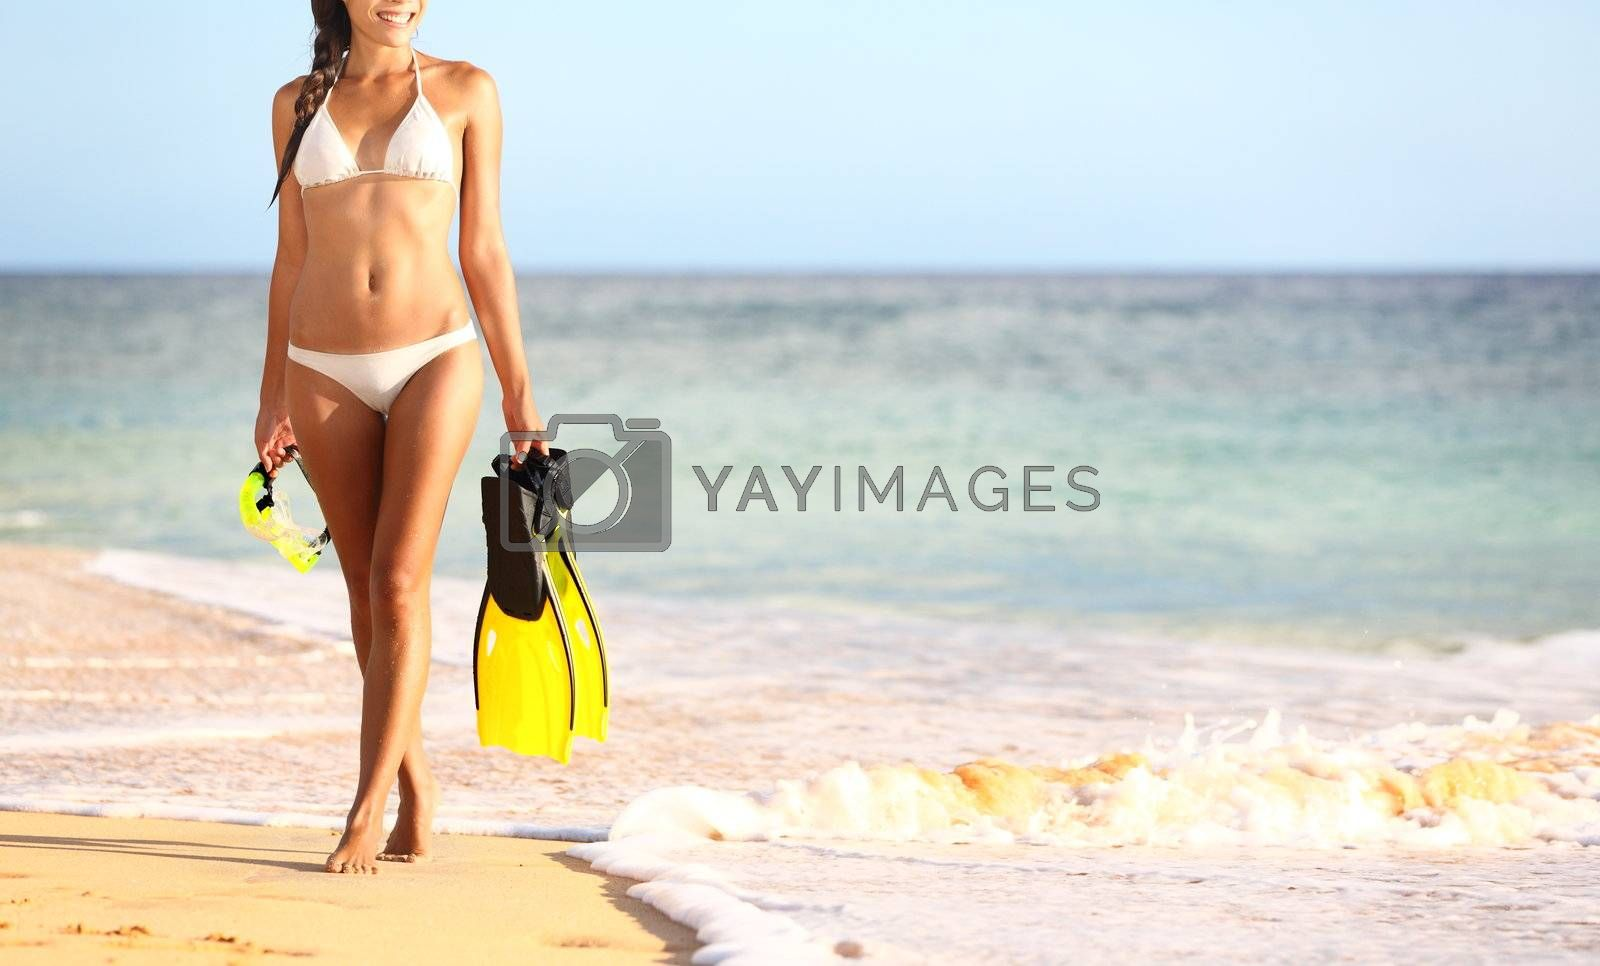 Beach summer travel holidays vacation concept with woman in bikini walking on sunny beach holding snorkeling equipment, fins and mask. Photo from Makena Beach, Maui, Hawaii.